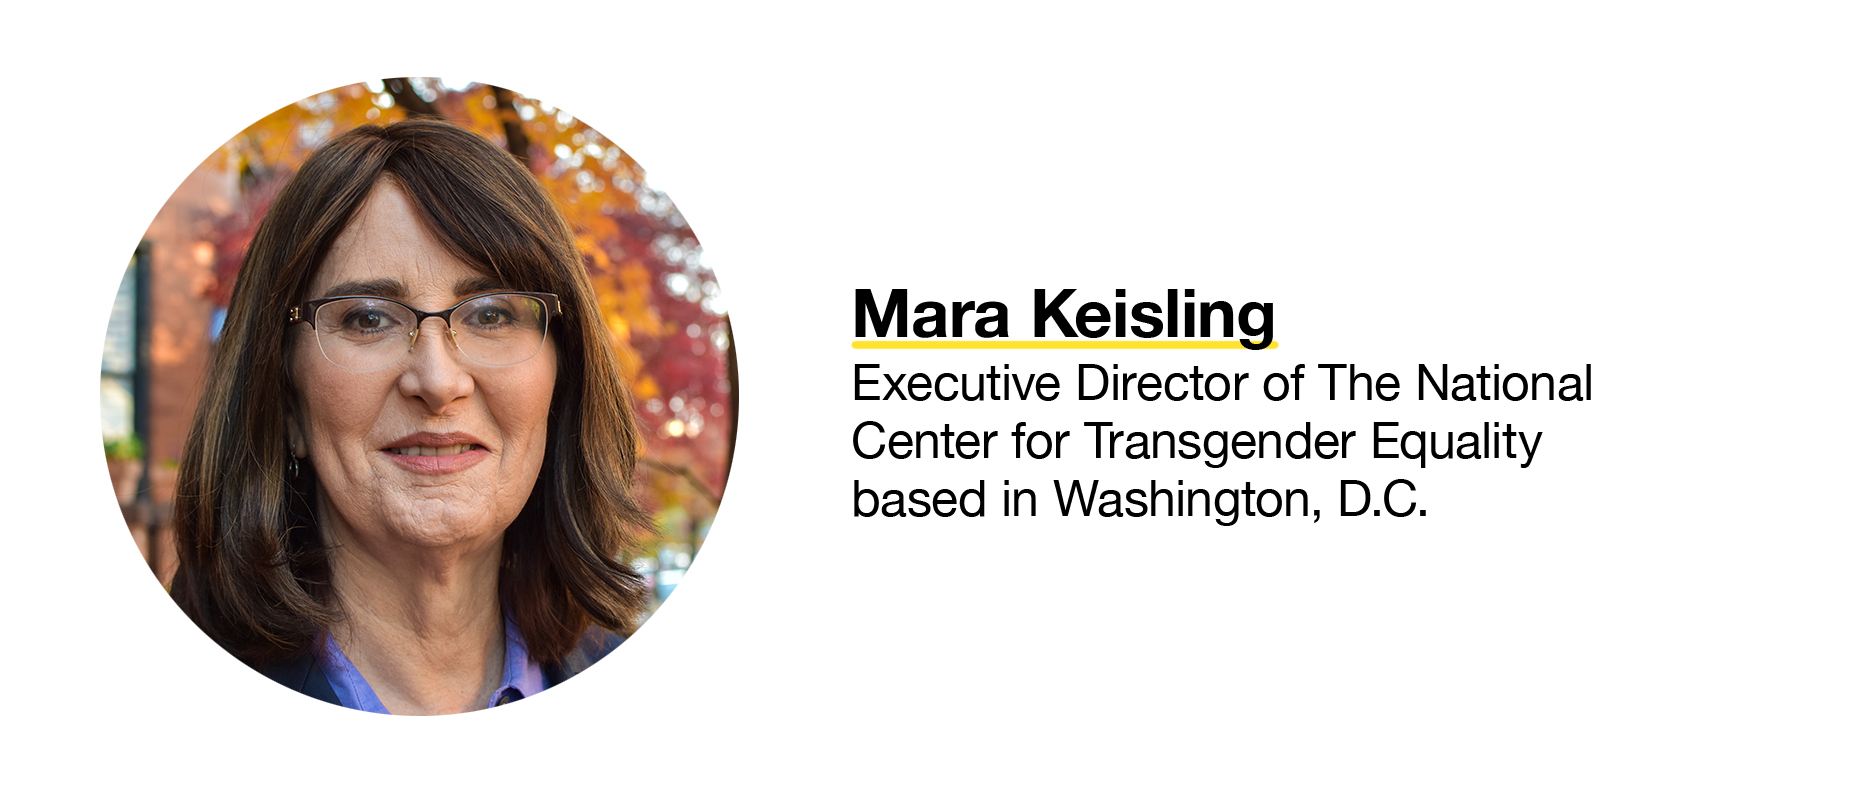 Mara Keisling, Executive Director for The National Center for Transgender Equality.